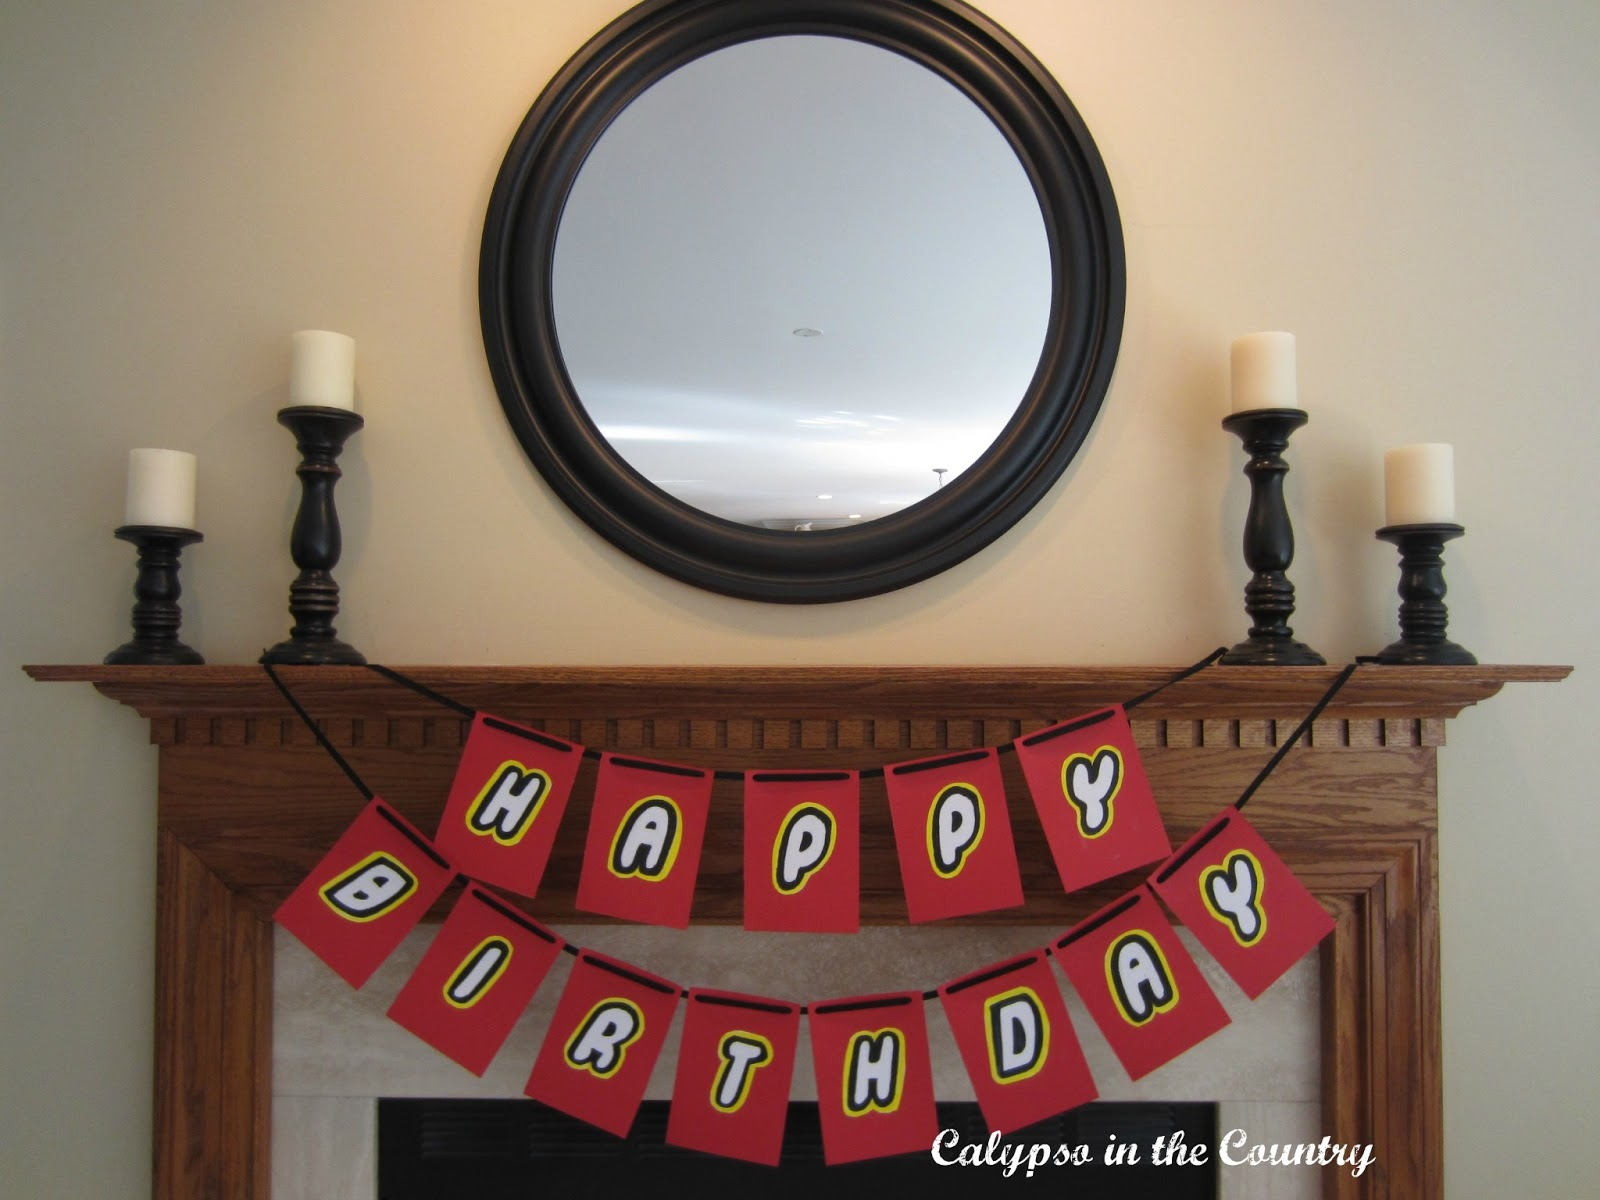 Lego Party Decor - Homemade Banner for the Mantel